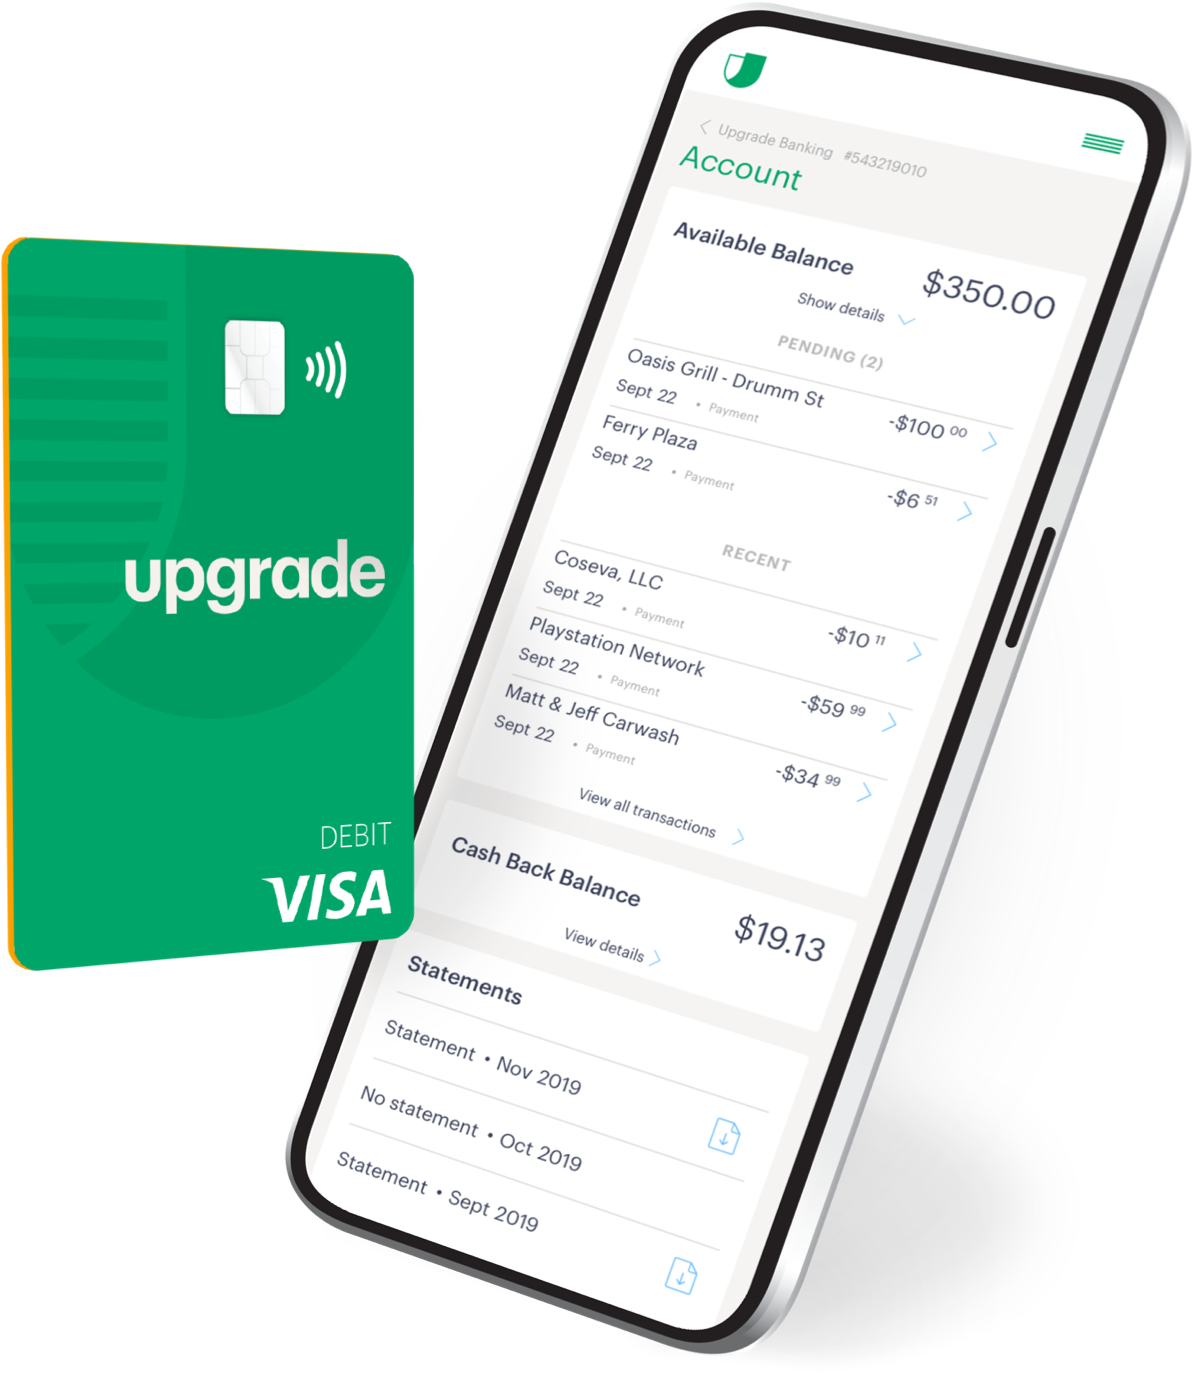 Upgrade launches checking accounts and debit cards